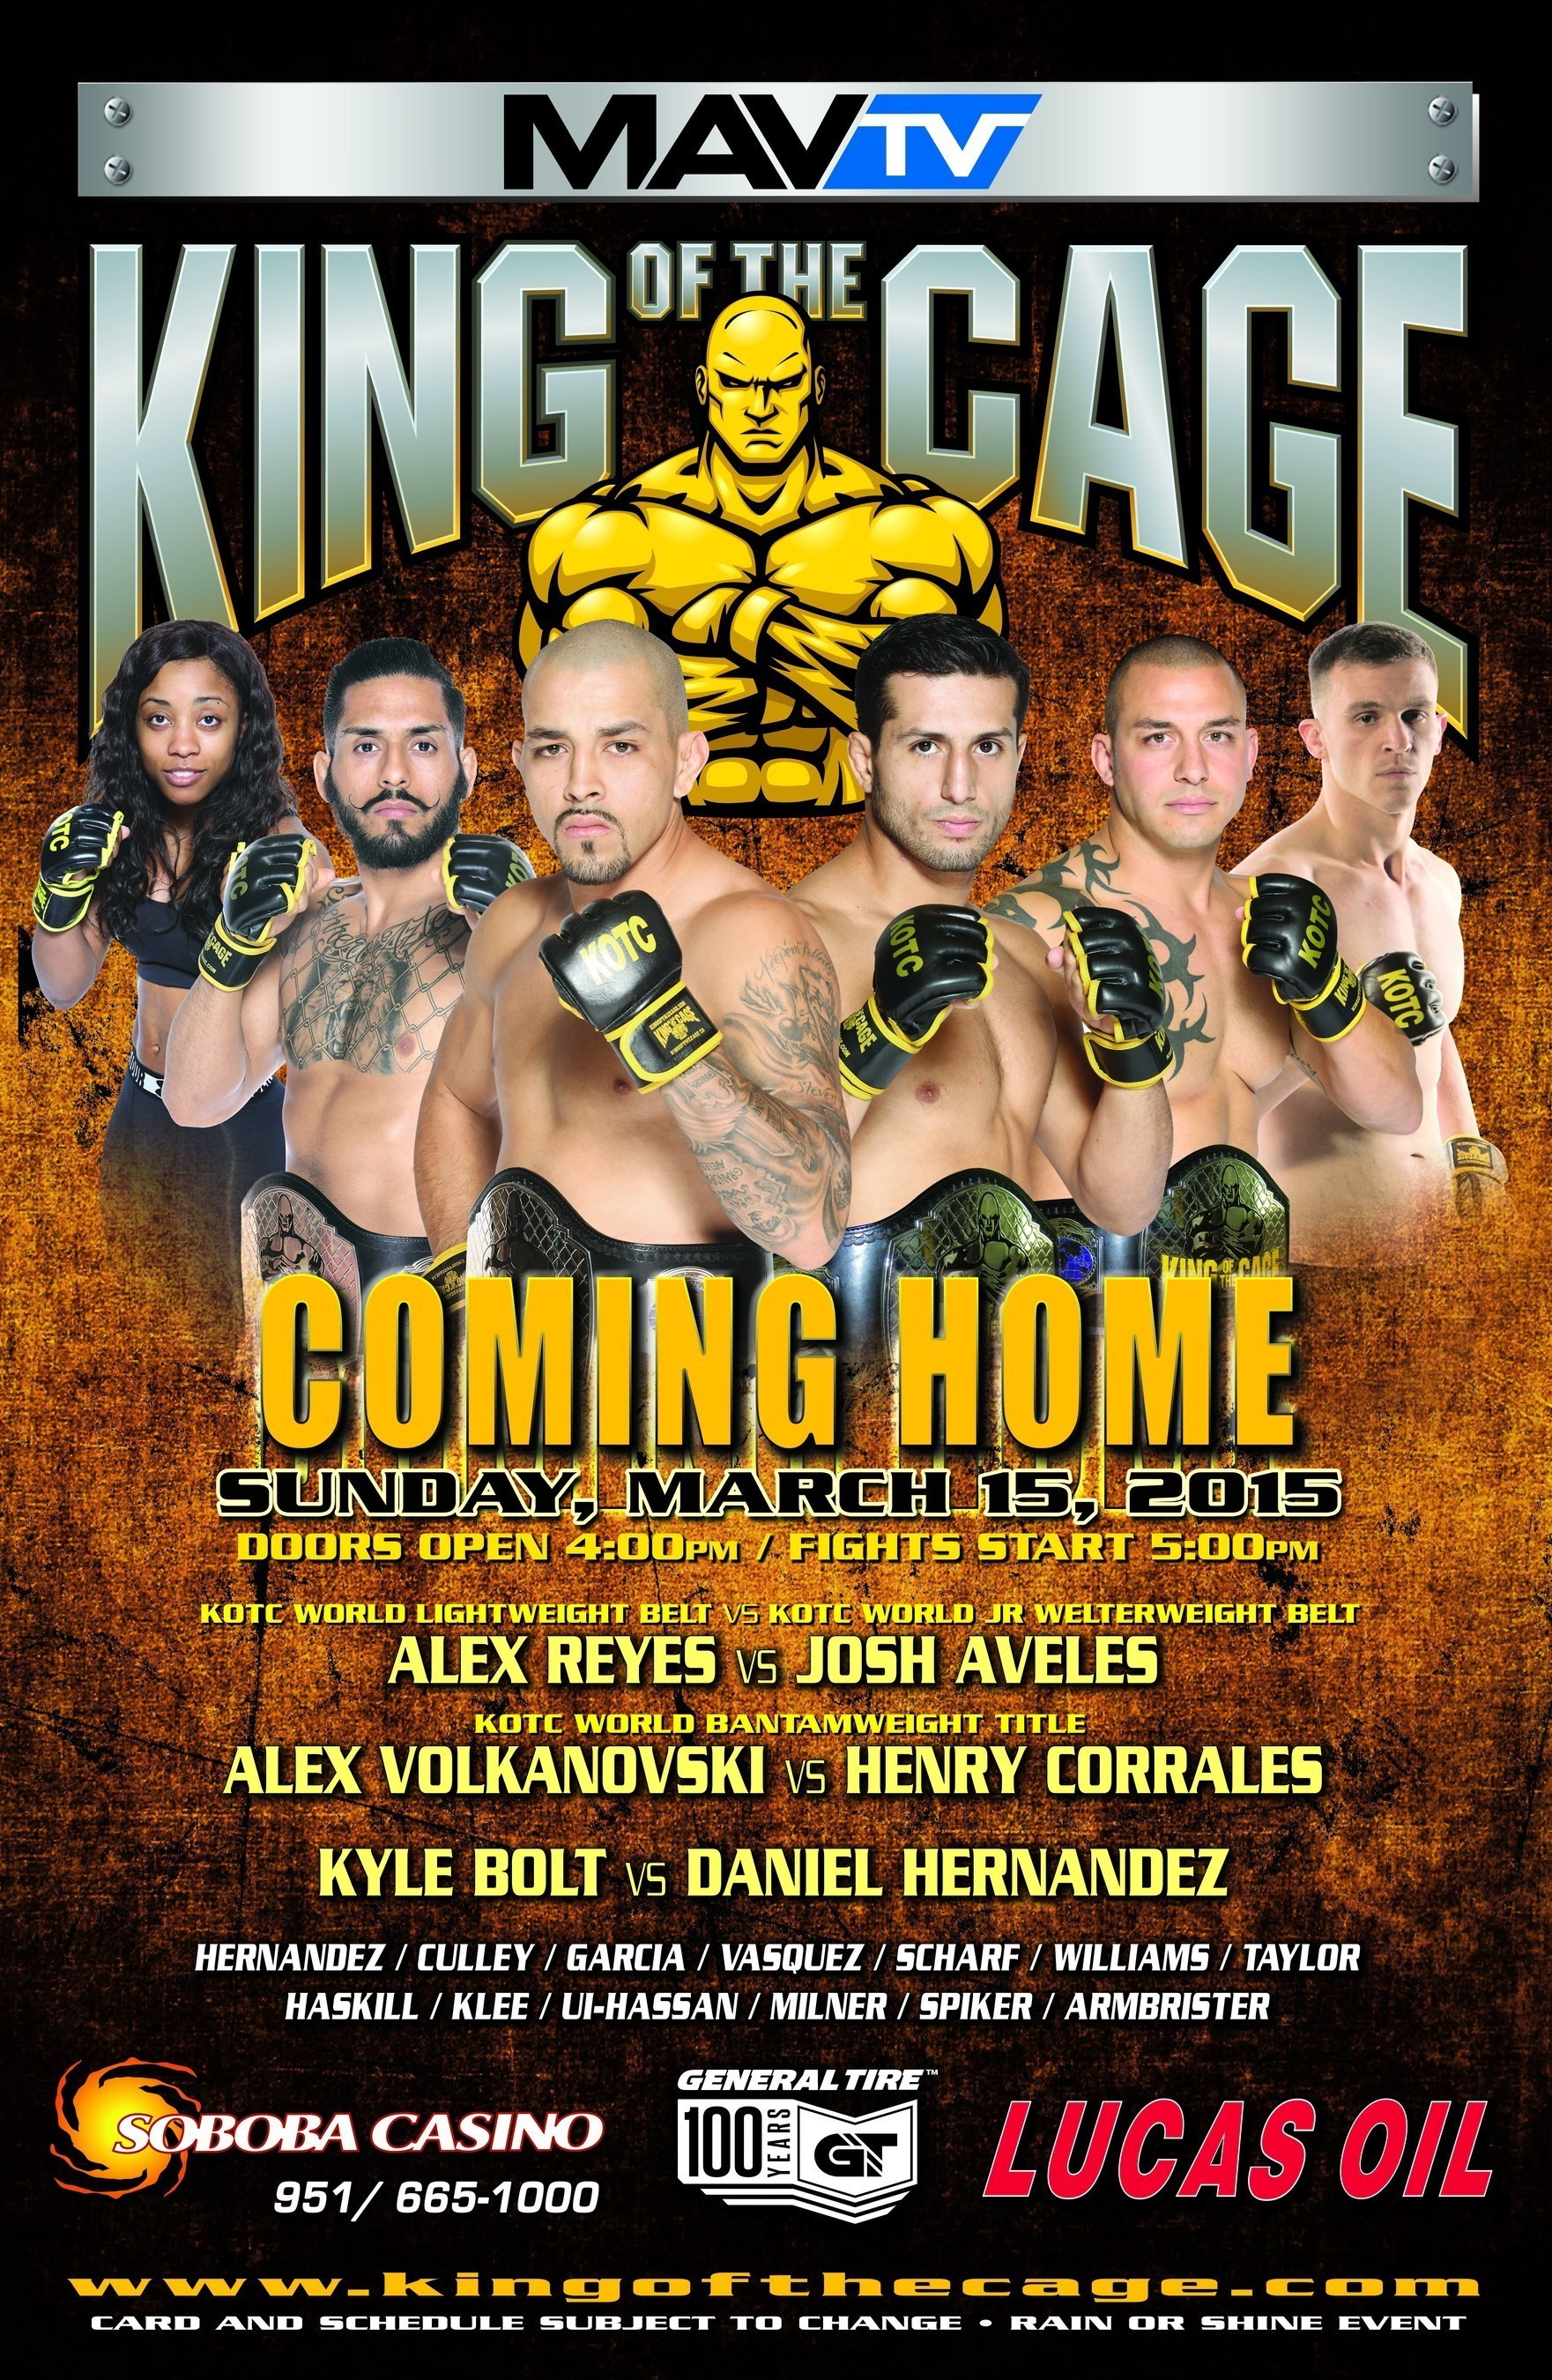 King of the Cage, an internationally broadcast MMA company, is proud to announce on Sunday, March 15, 2015, KOTC will return to Soboba Casino in San Jacinto, California for a broadcast event in the 10,000 seat Soboba Arena.